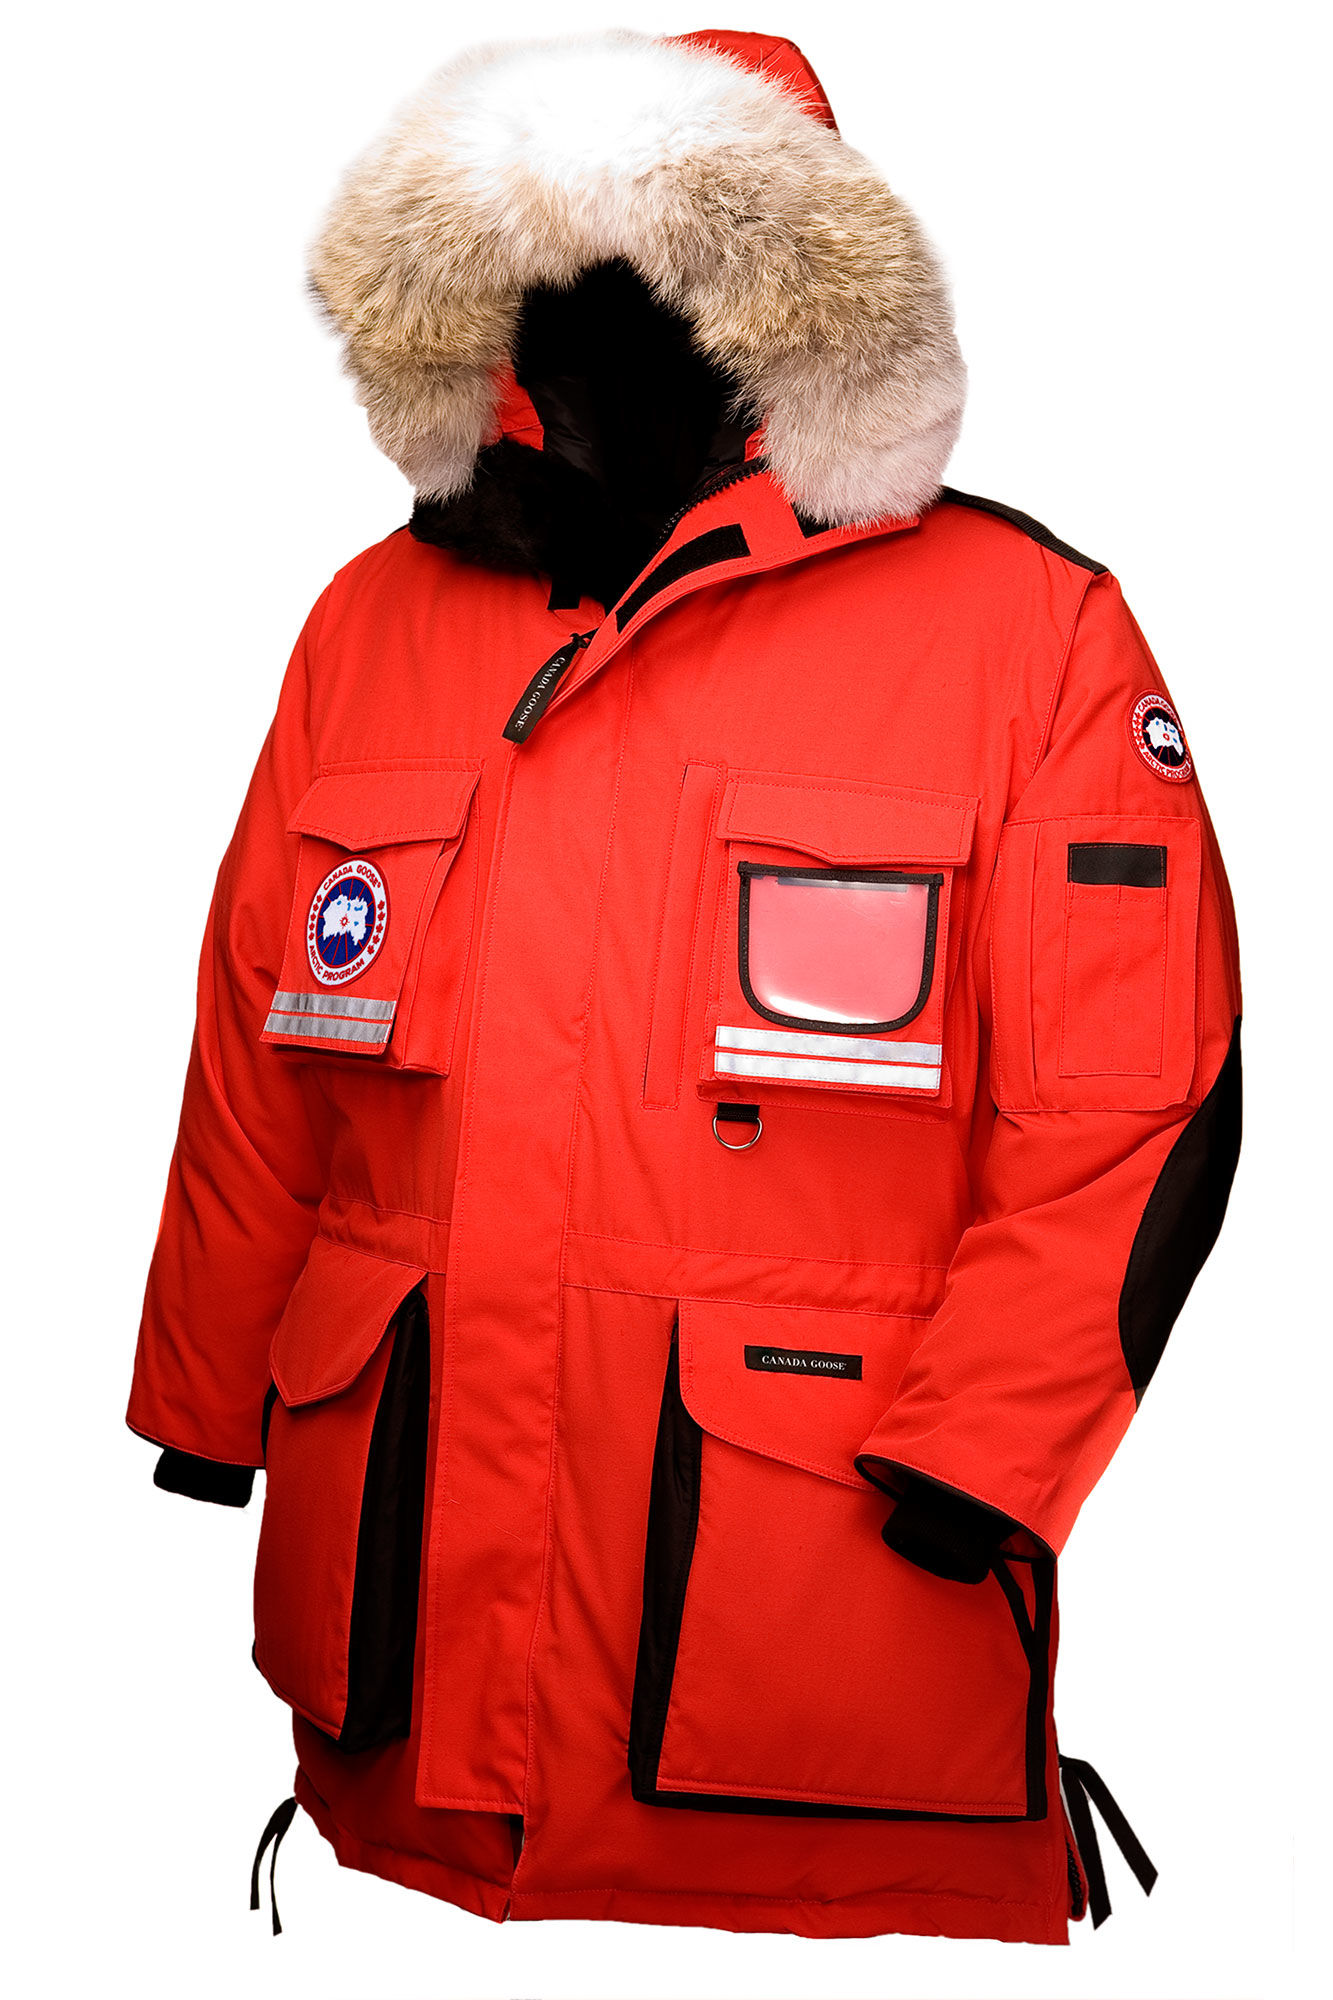 Canada Goose montebello parka outlet price - 7 Warmest Jackets In The World That Won't Break The Bank �� PHOTOS ...